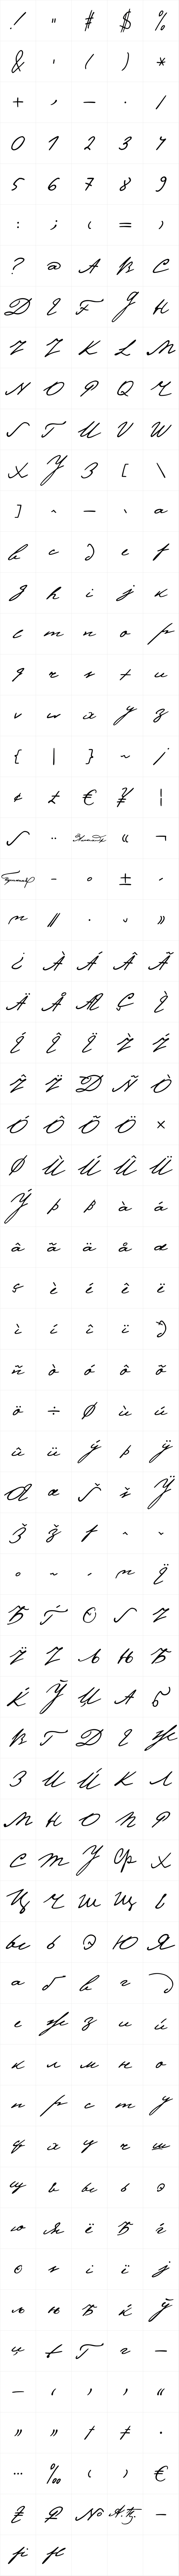 Pushkin Script Low